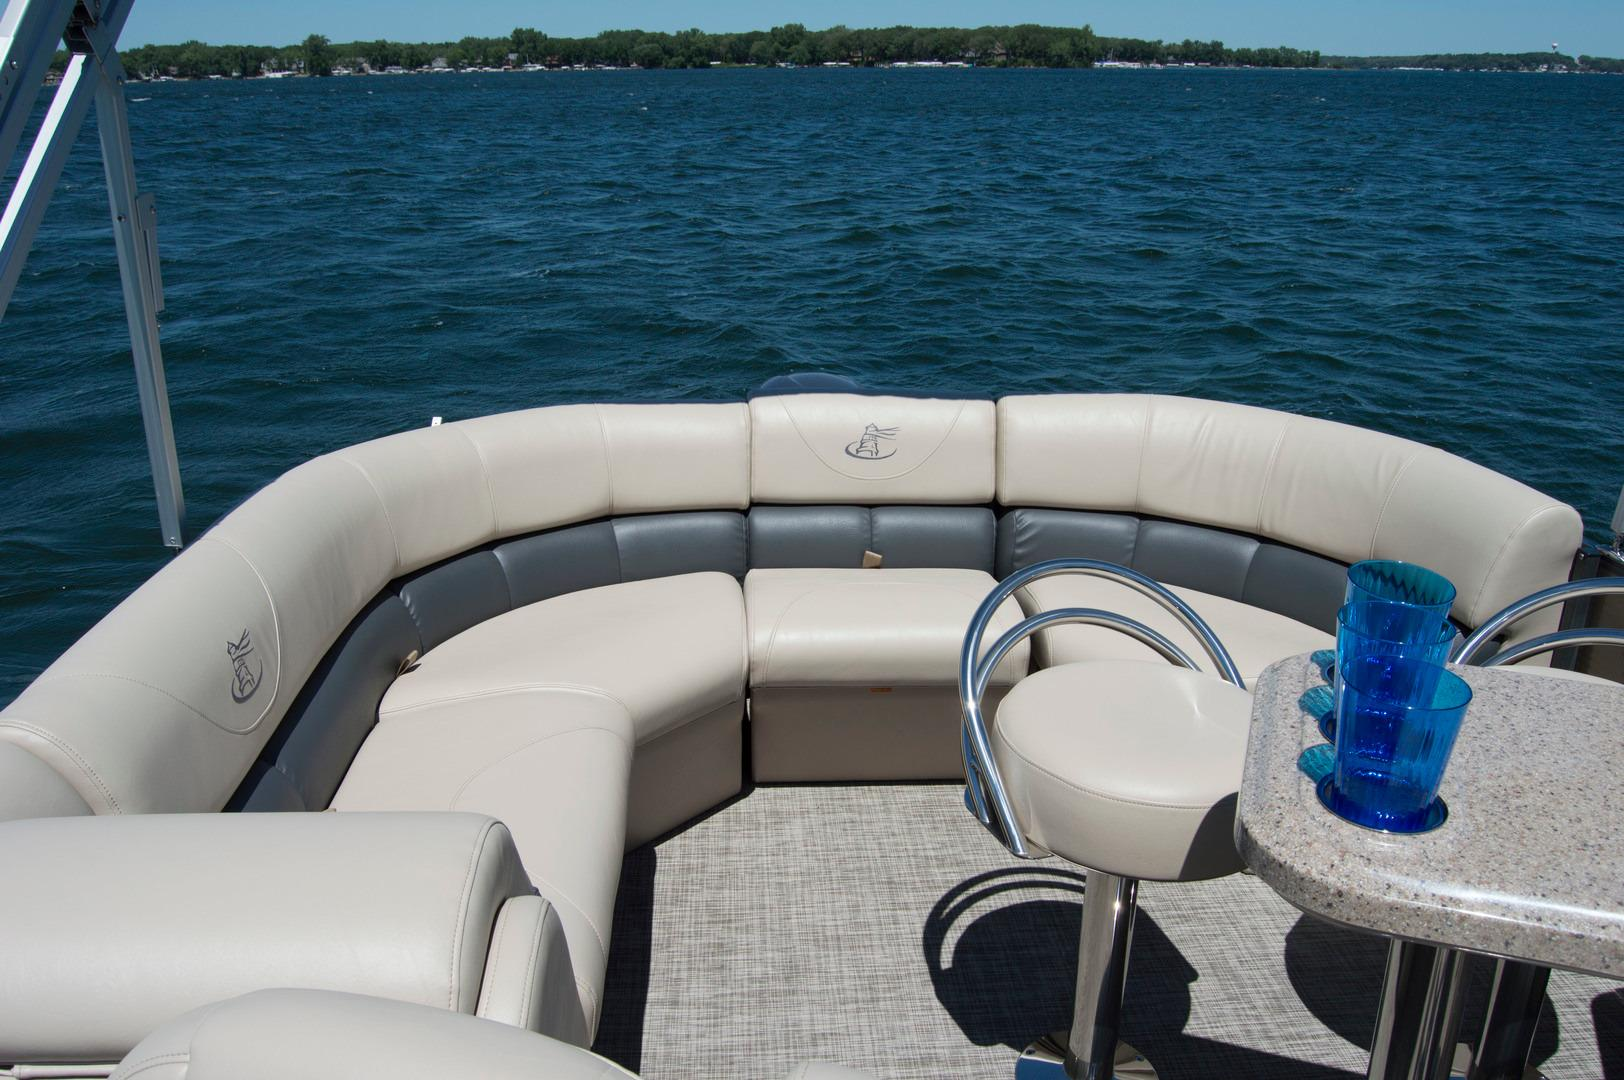 2016 Misty Harbor 2585 Biscayne Bay CE in Trego, Wisconsin